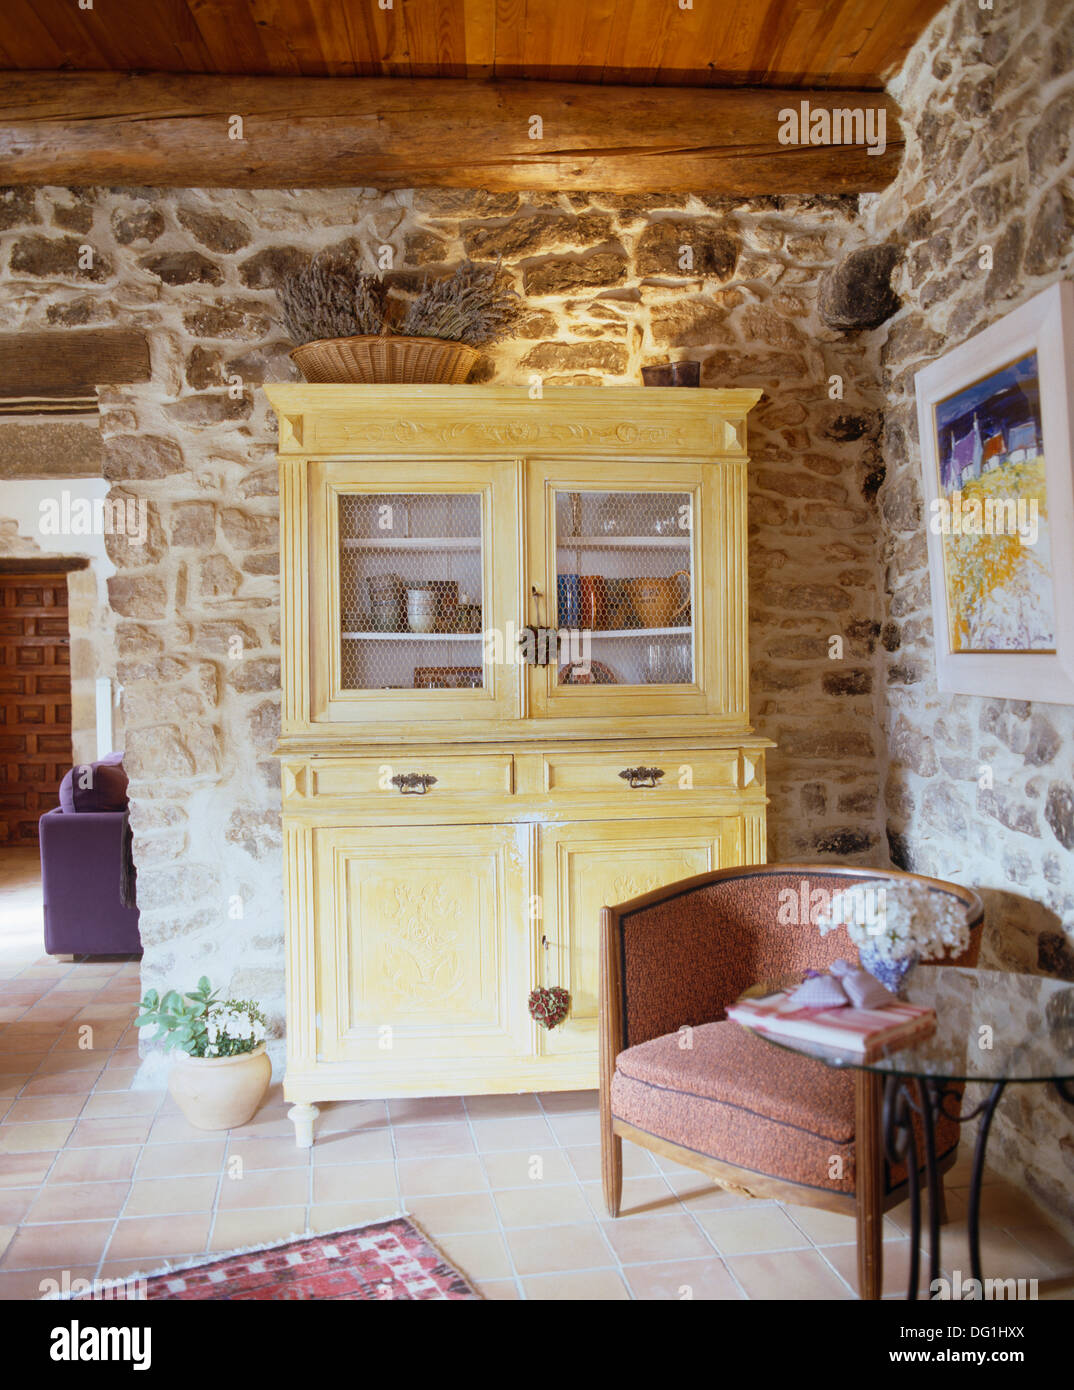 Stripped Wood Dresser And Small Tub Chair In French Country Dining Room With Exposed Stone Walls